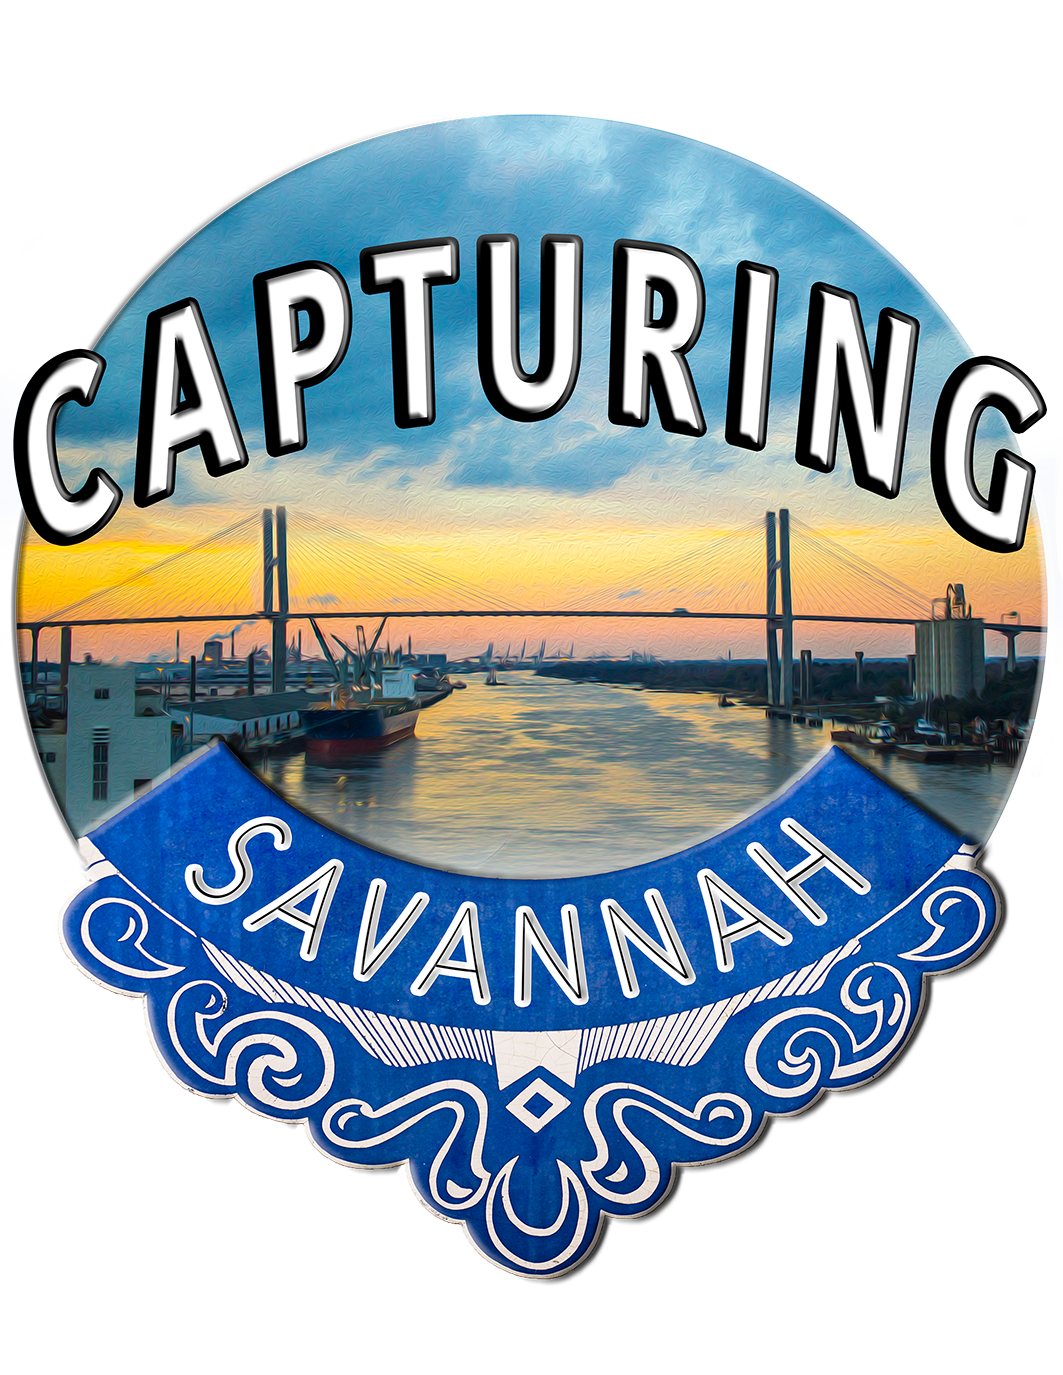 Photography Tours ⁄ savannah,GA.USA